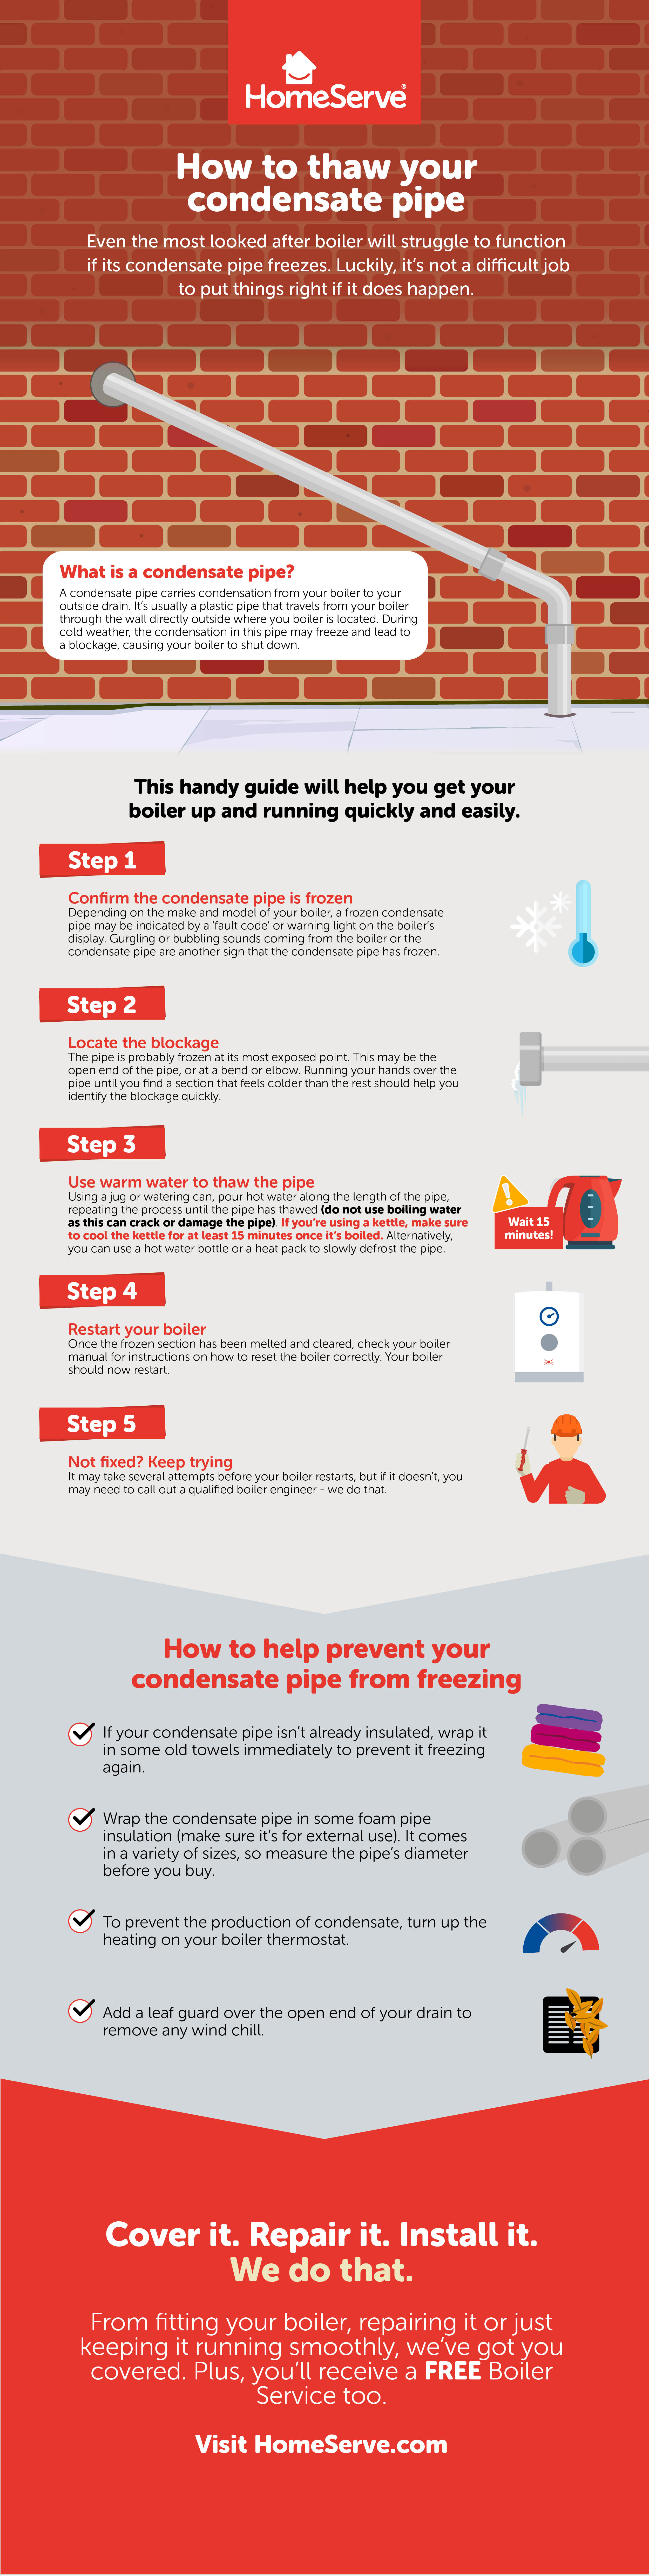 How to thaw a frozen condensate pipe infographic